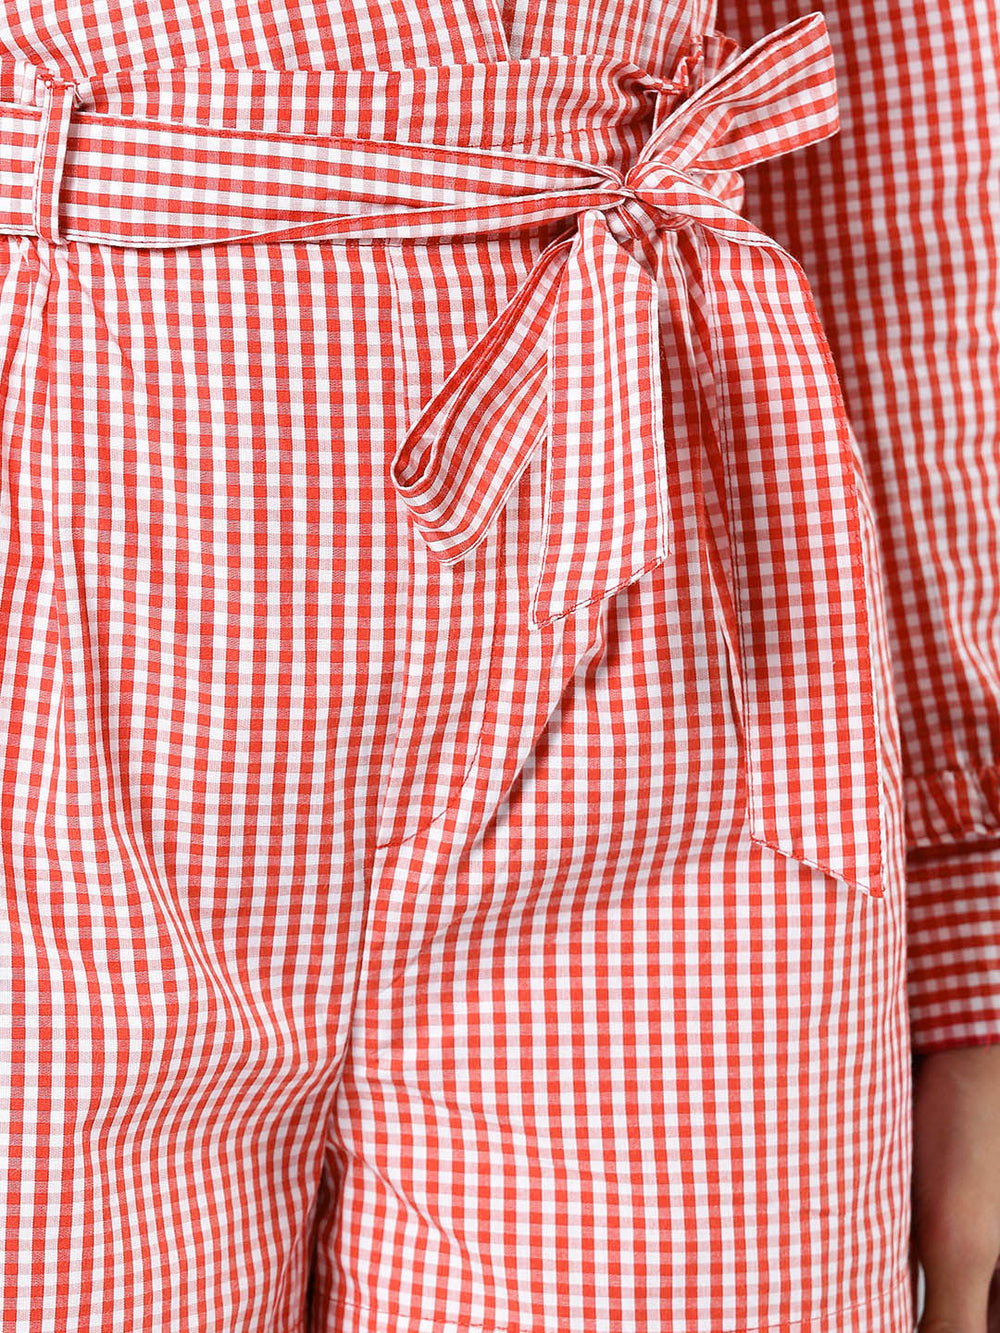 Besiva Women Red & White Checked Regular Shorts